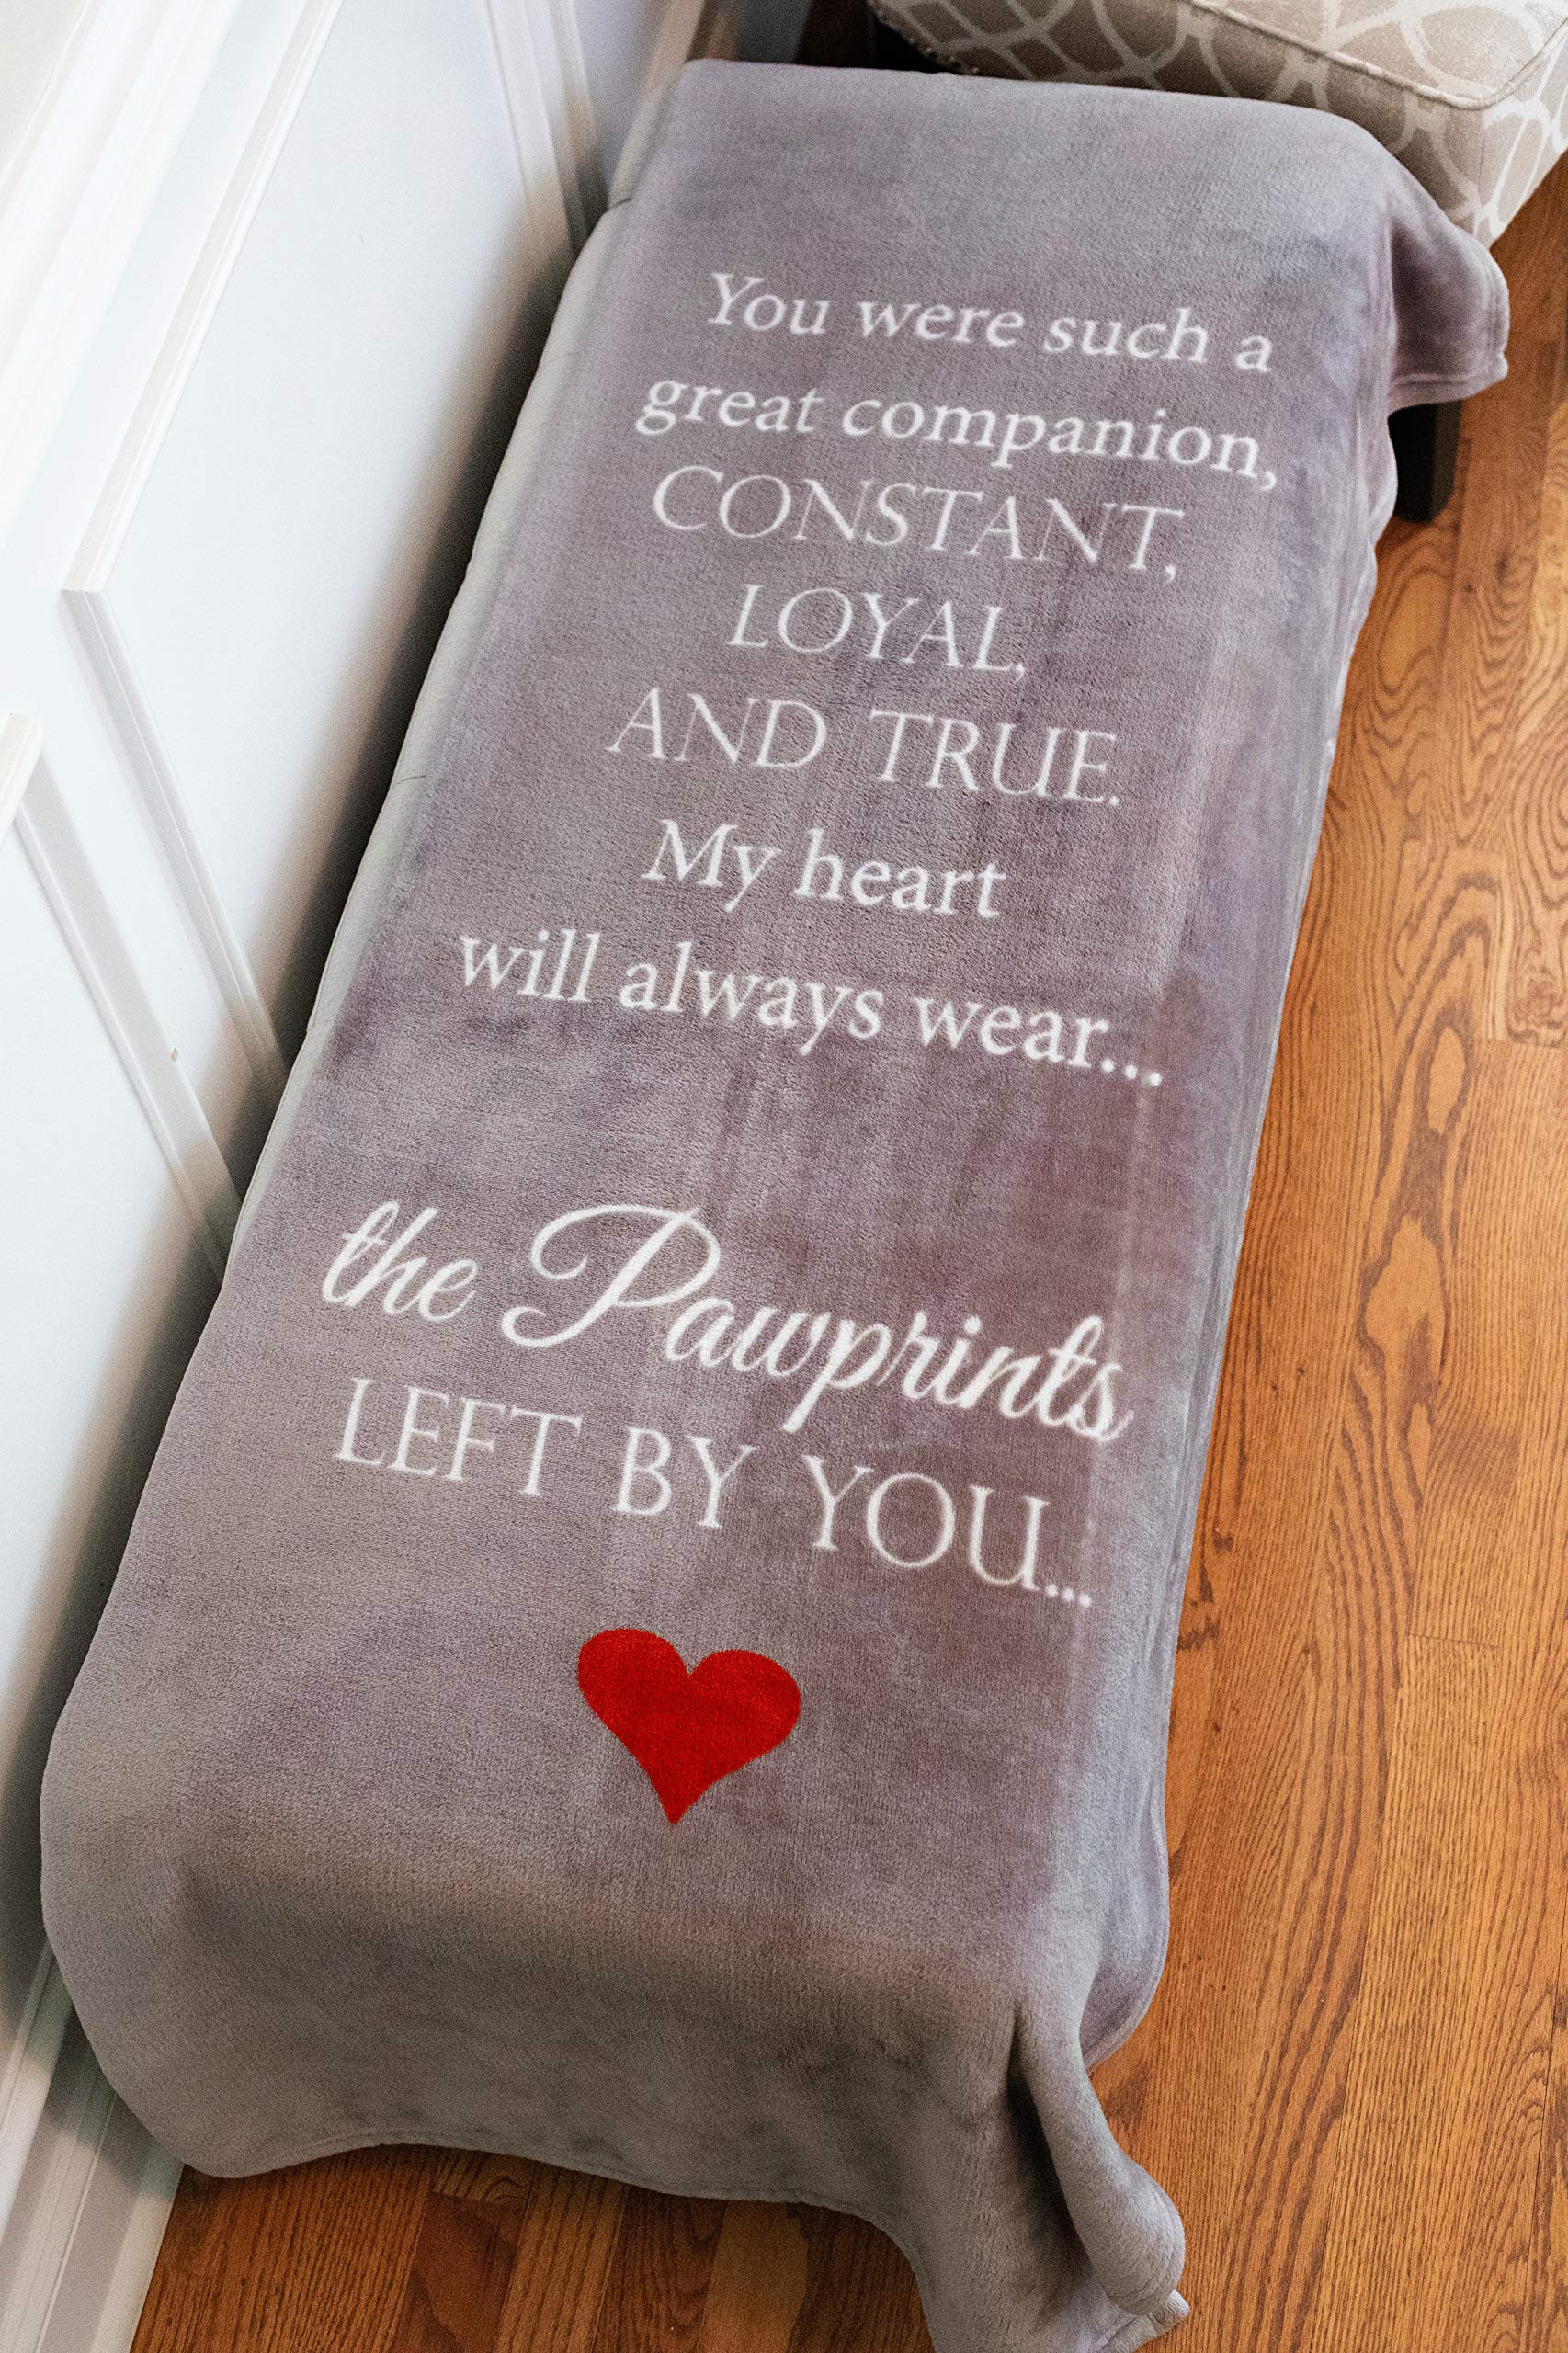 Pawprints Left by You Pet Memorial Blanket with Heartfelt Sentiment - Comforting Pet Loss/Pet Bereavement Gift (Non Personalized) 3